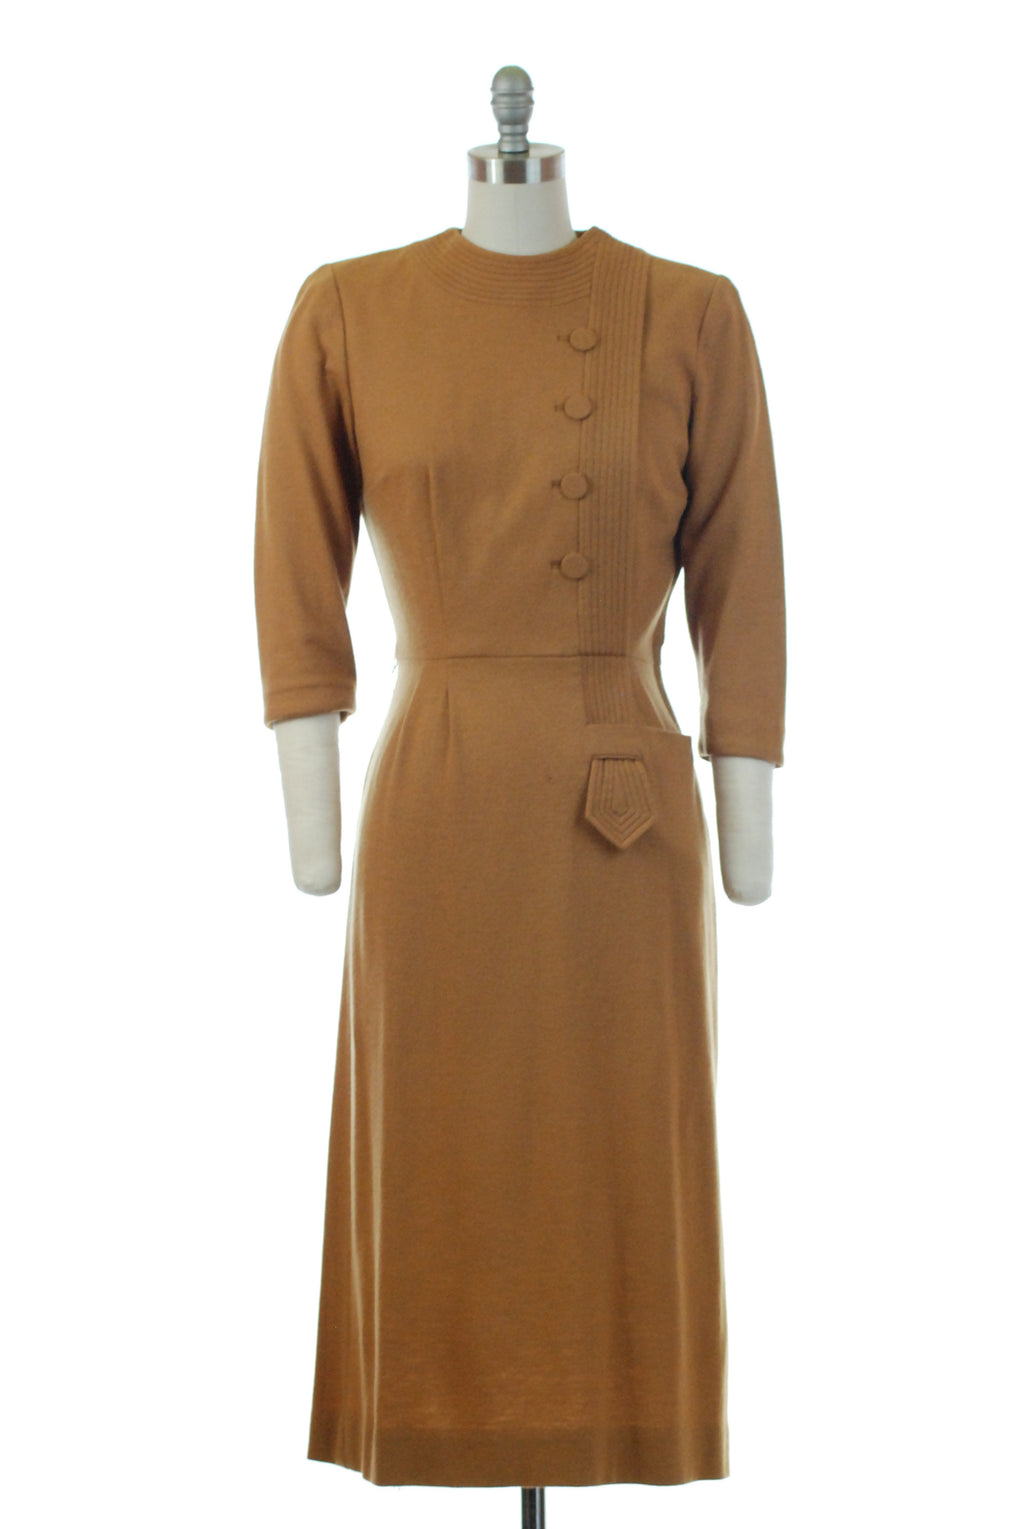 Classic 1950s Mustard Wool Dress with Bodice Accents